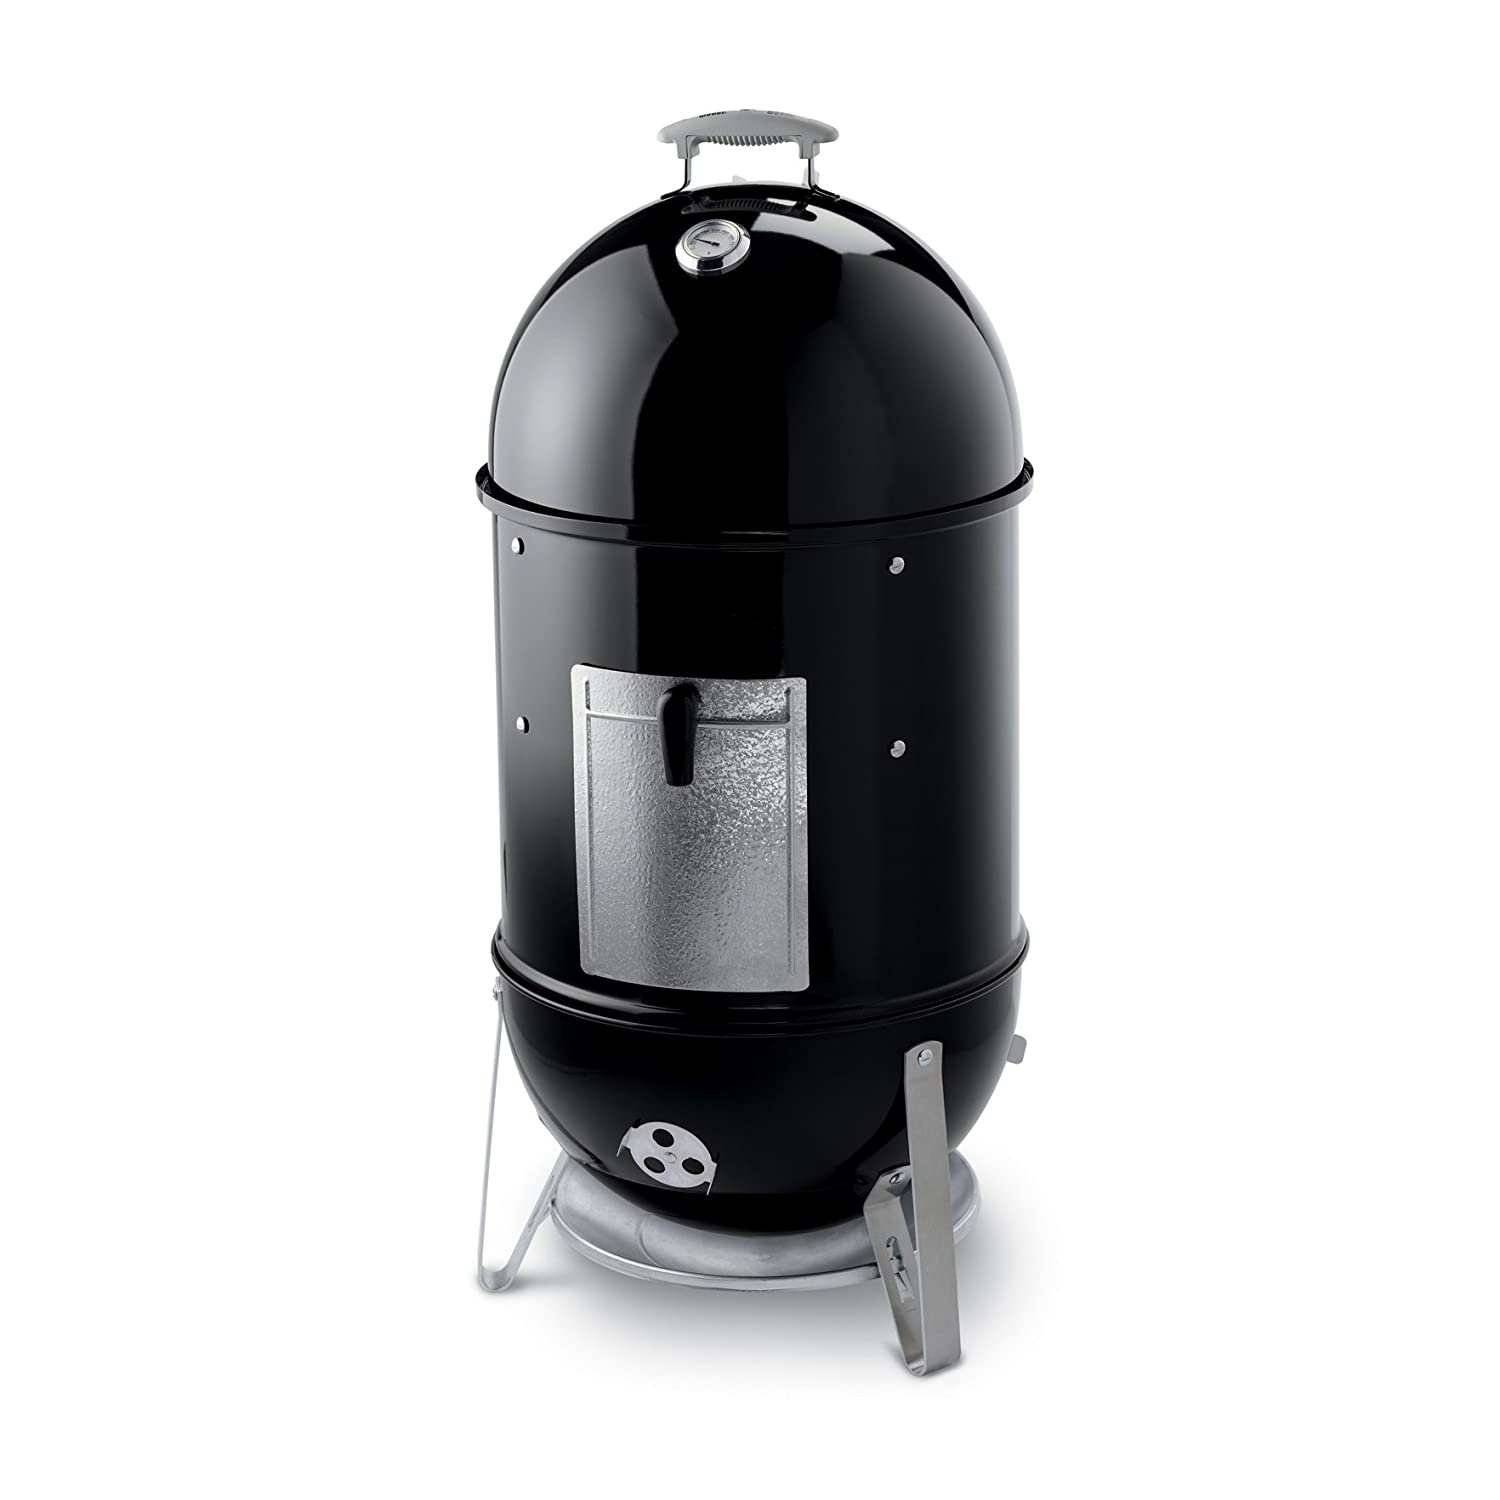 Weber 721001 Smokey Mountain Cooker Smoker